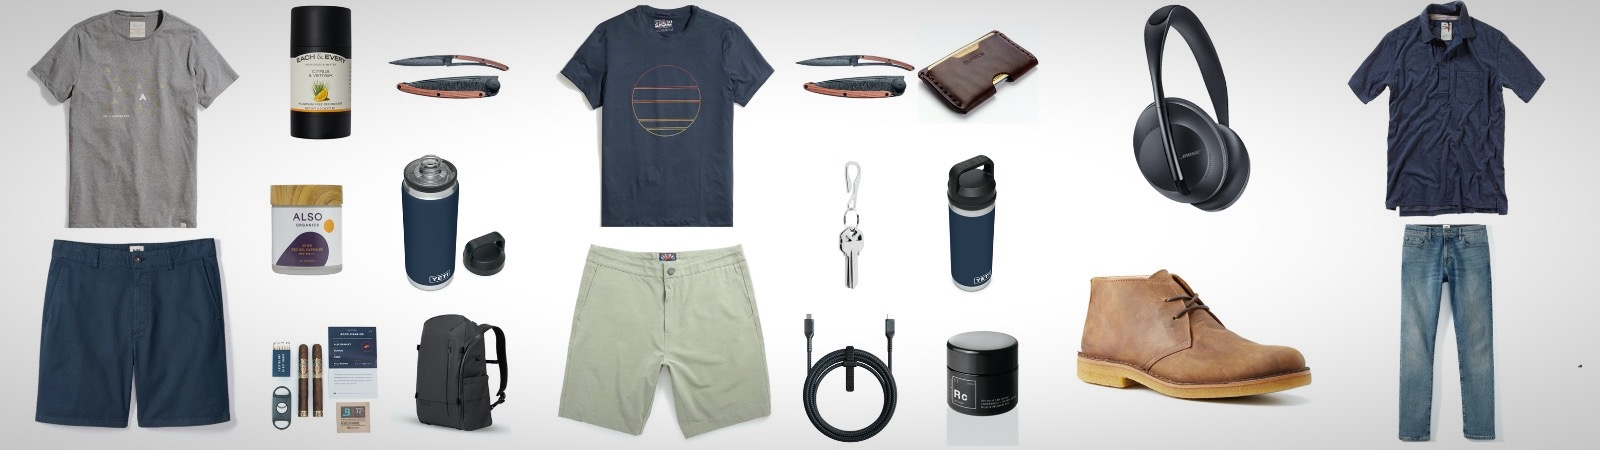 50 'Things We Want' This Week: Bourbon, Camping Gear, Summer Styles, And More